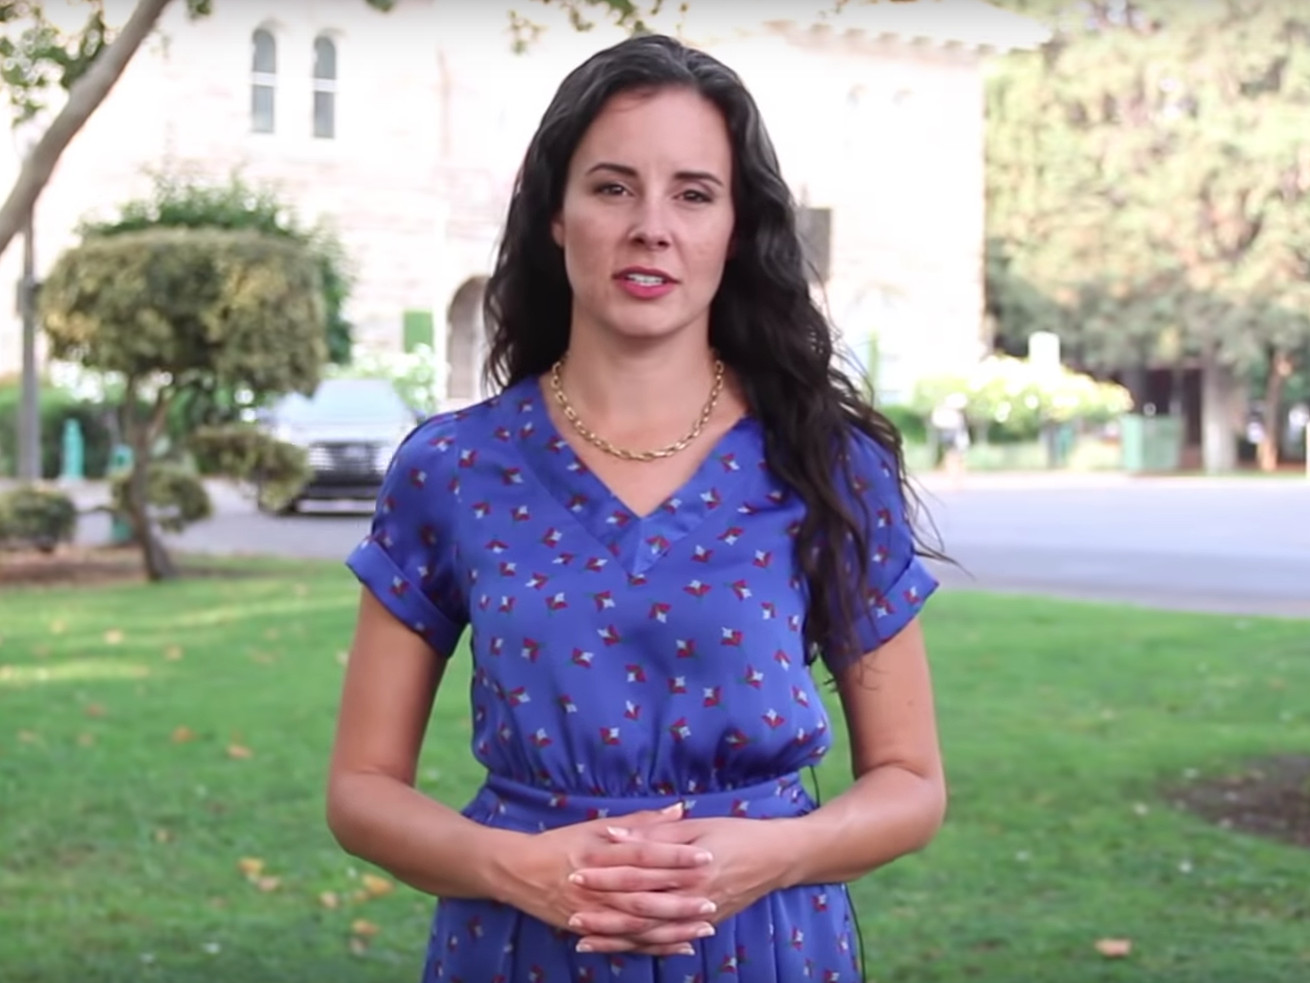 Sonoma City Council member Rachel Hundley, shown here in a still from a video she made calling out her online harassers.